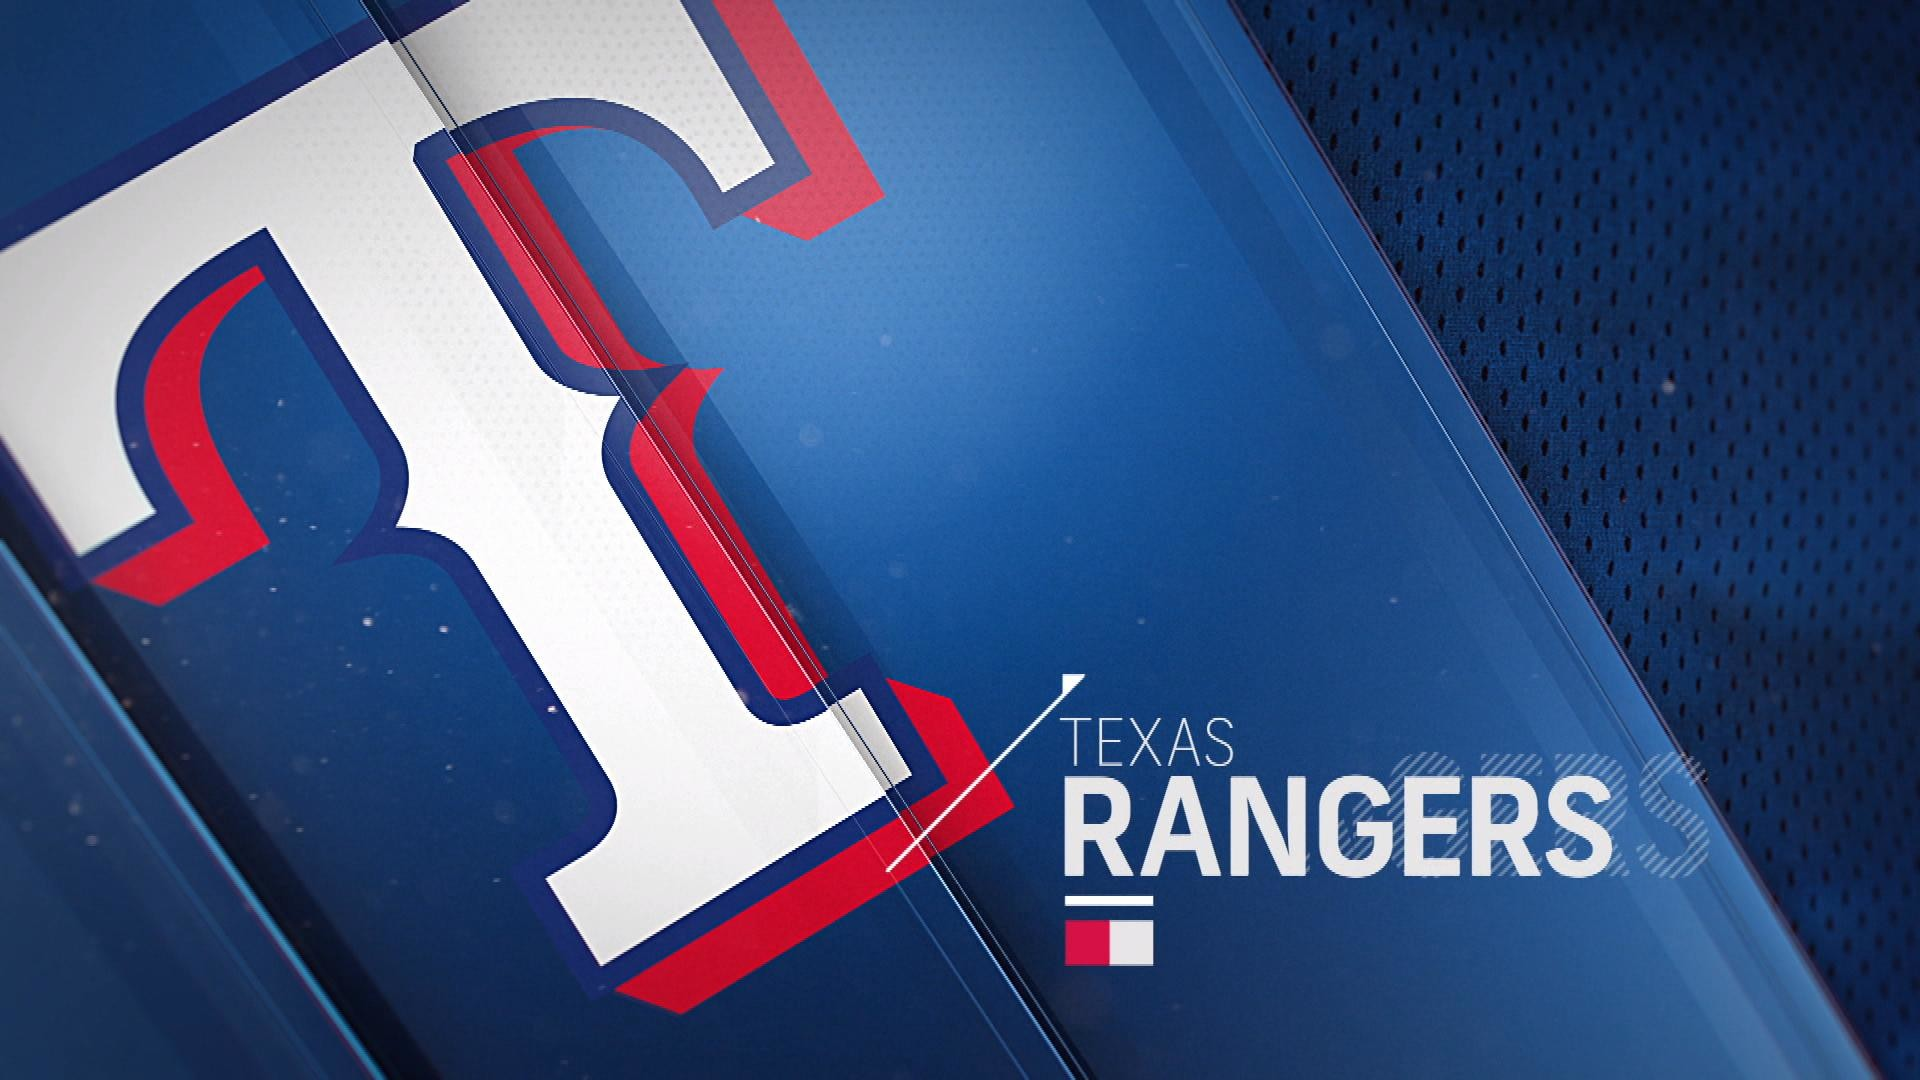 1920x1080 TEXAS RANGERS Baseball Mlb Wallpaper X